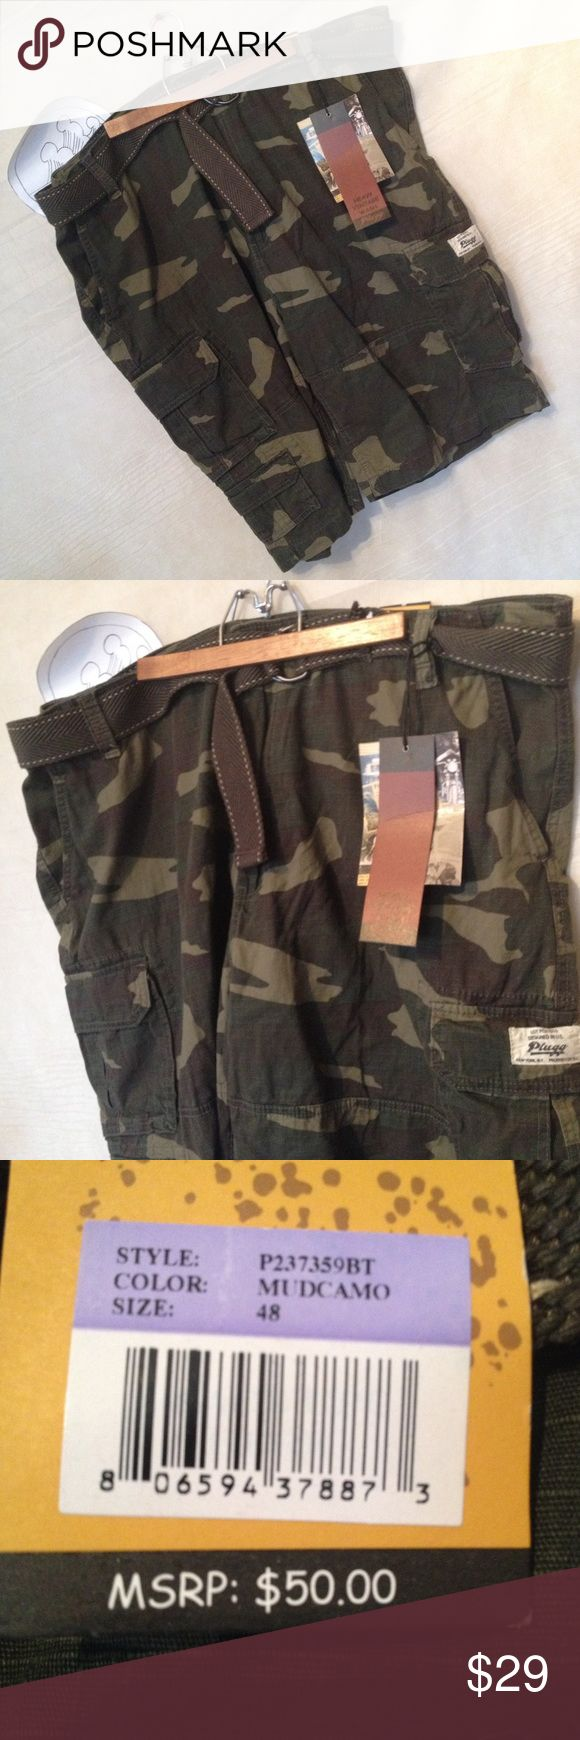 NWT Plugg green camo short size 46 canvas belt New with tags mens camo shorts, never worn, 1 day handling.  Thank you.  SKU 112116.001.00Y Plugg Shorts Cargo